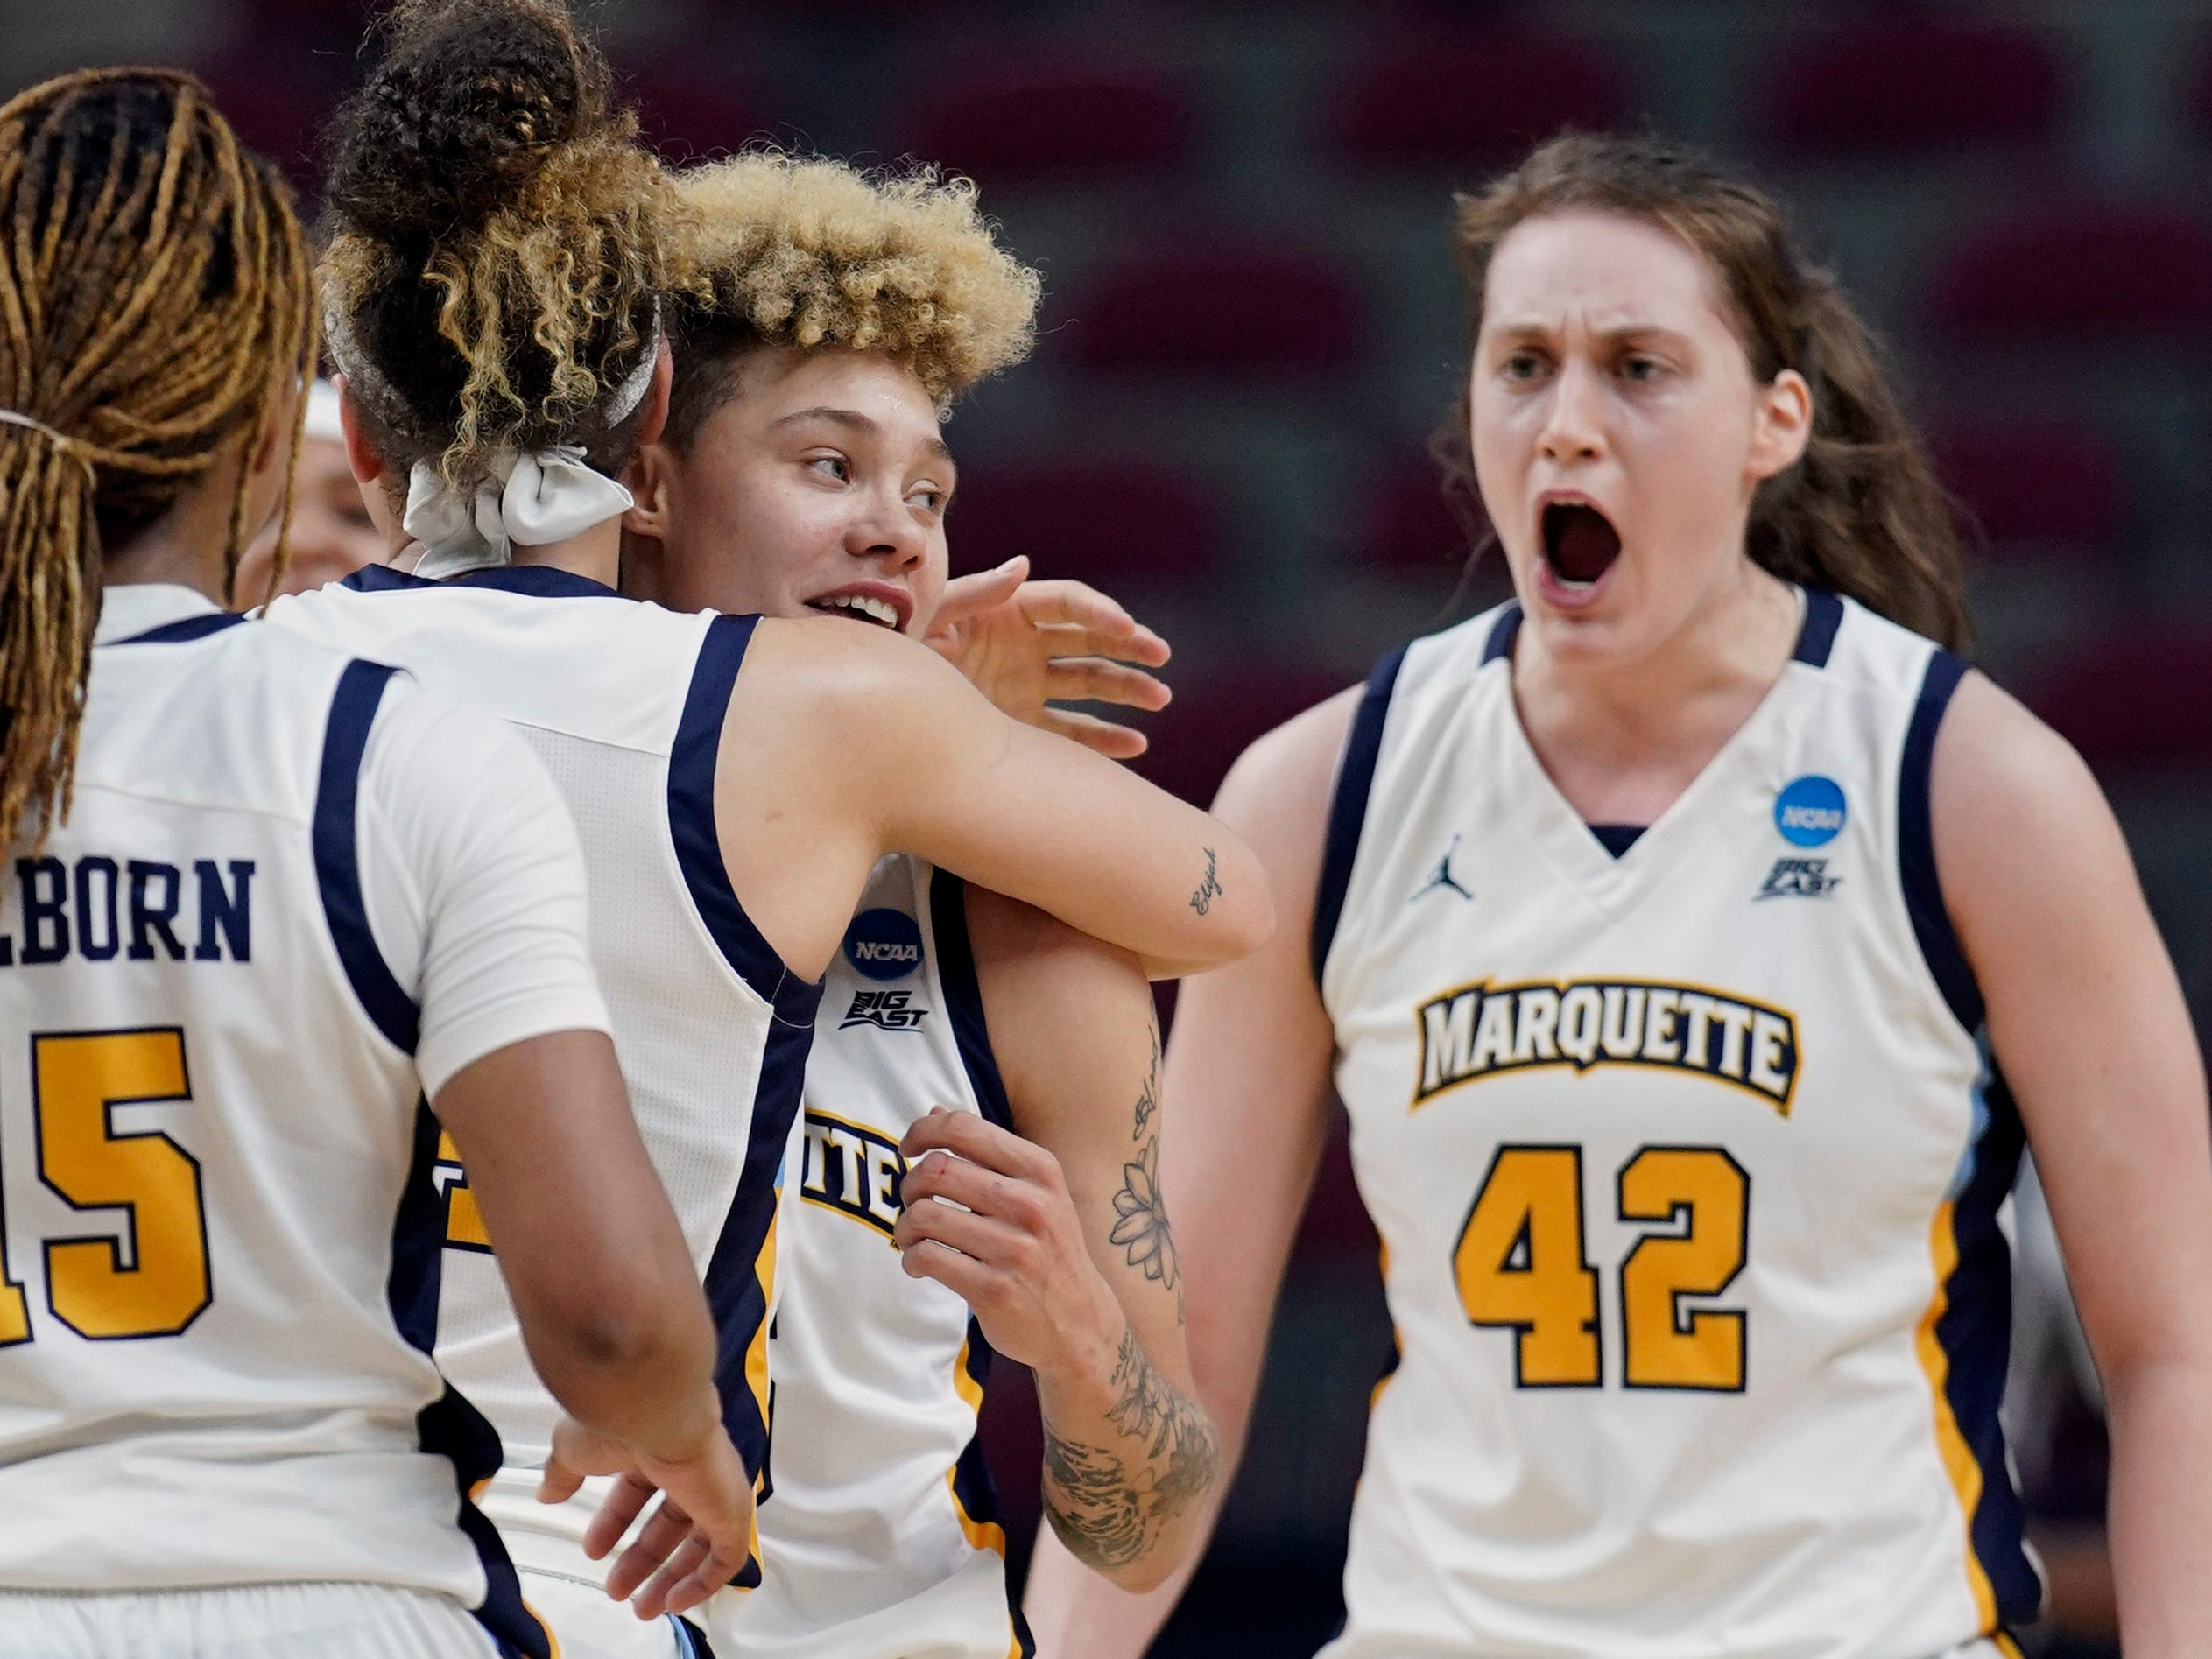 Marquette players celebrate their come-from-behind, overtime victory over Rice in the first round of the NCAA women's basketball tournament Friday.